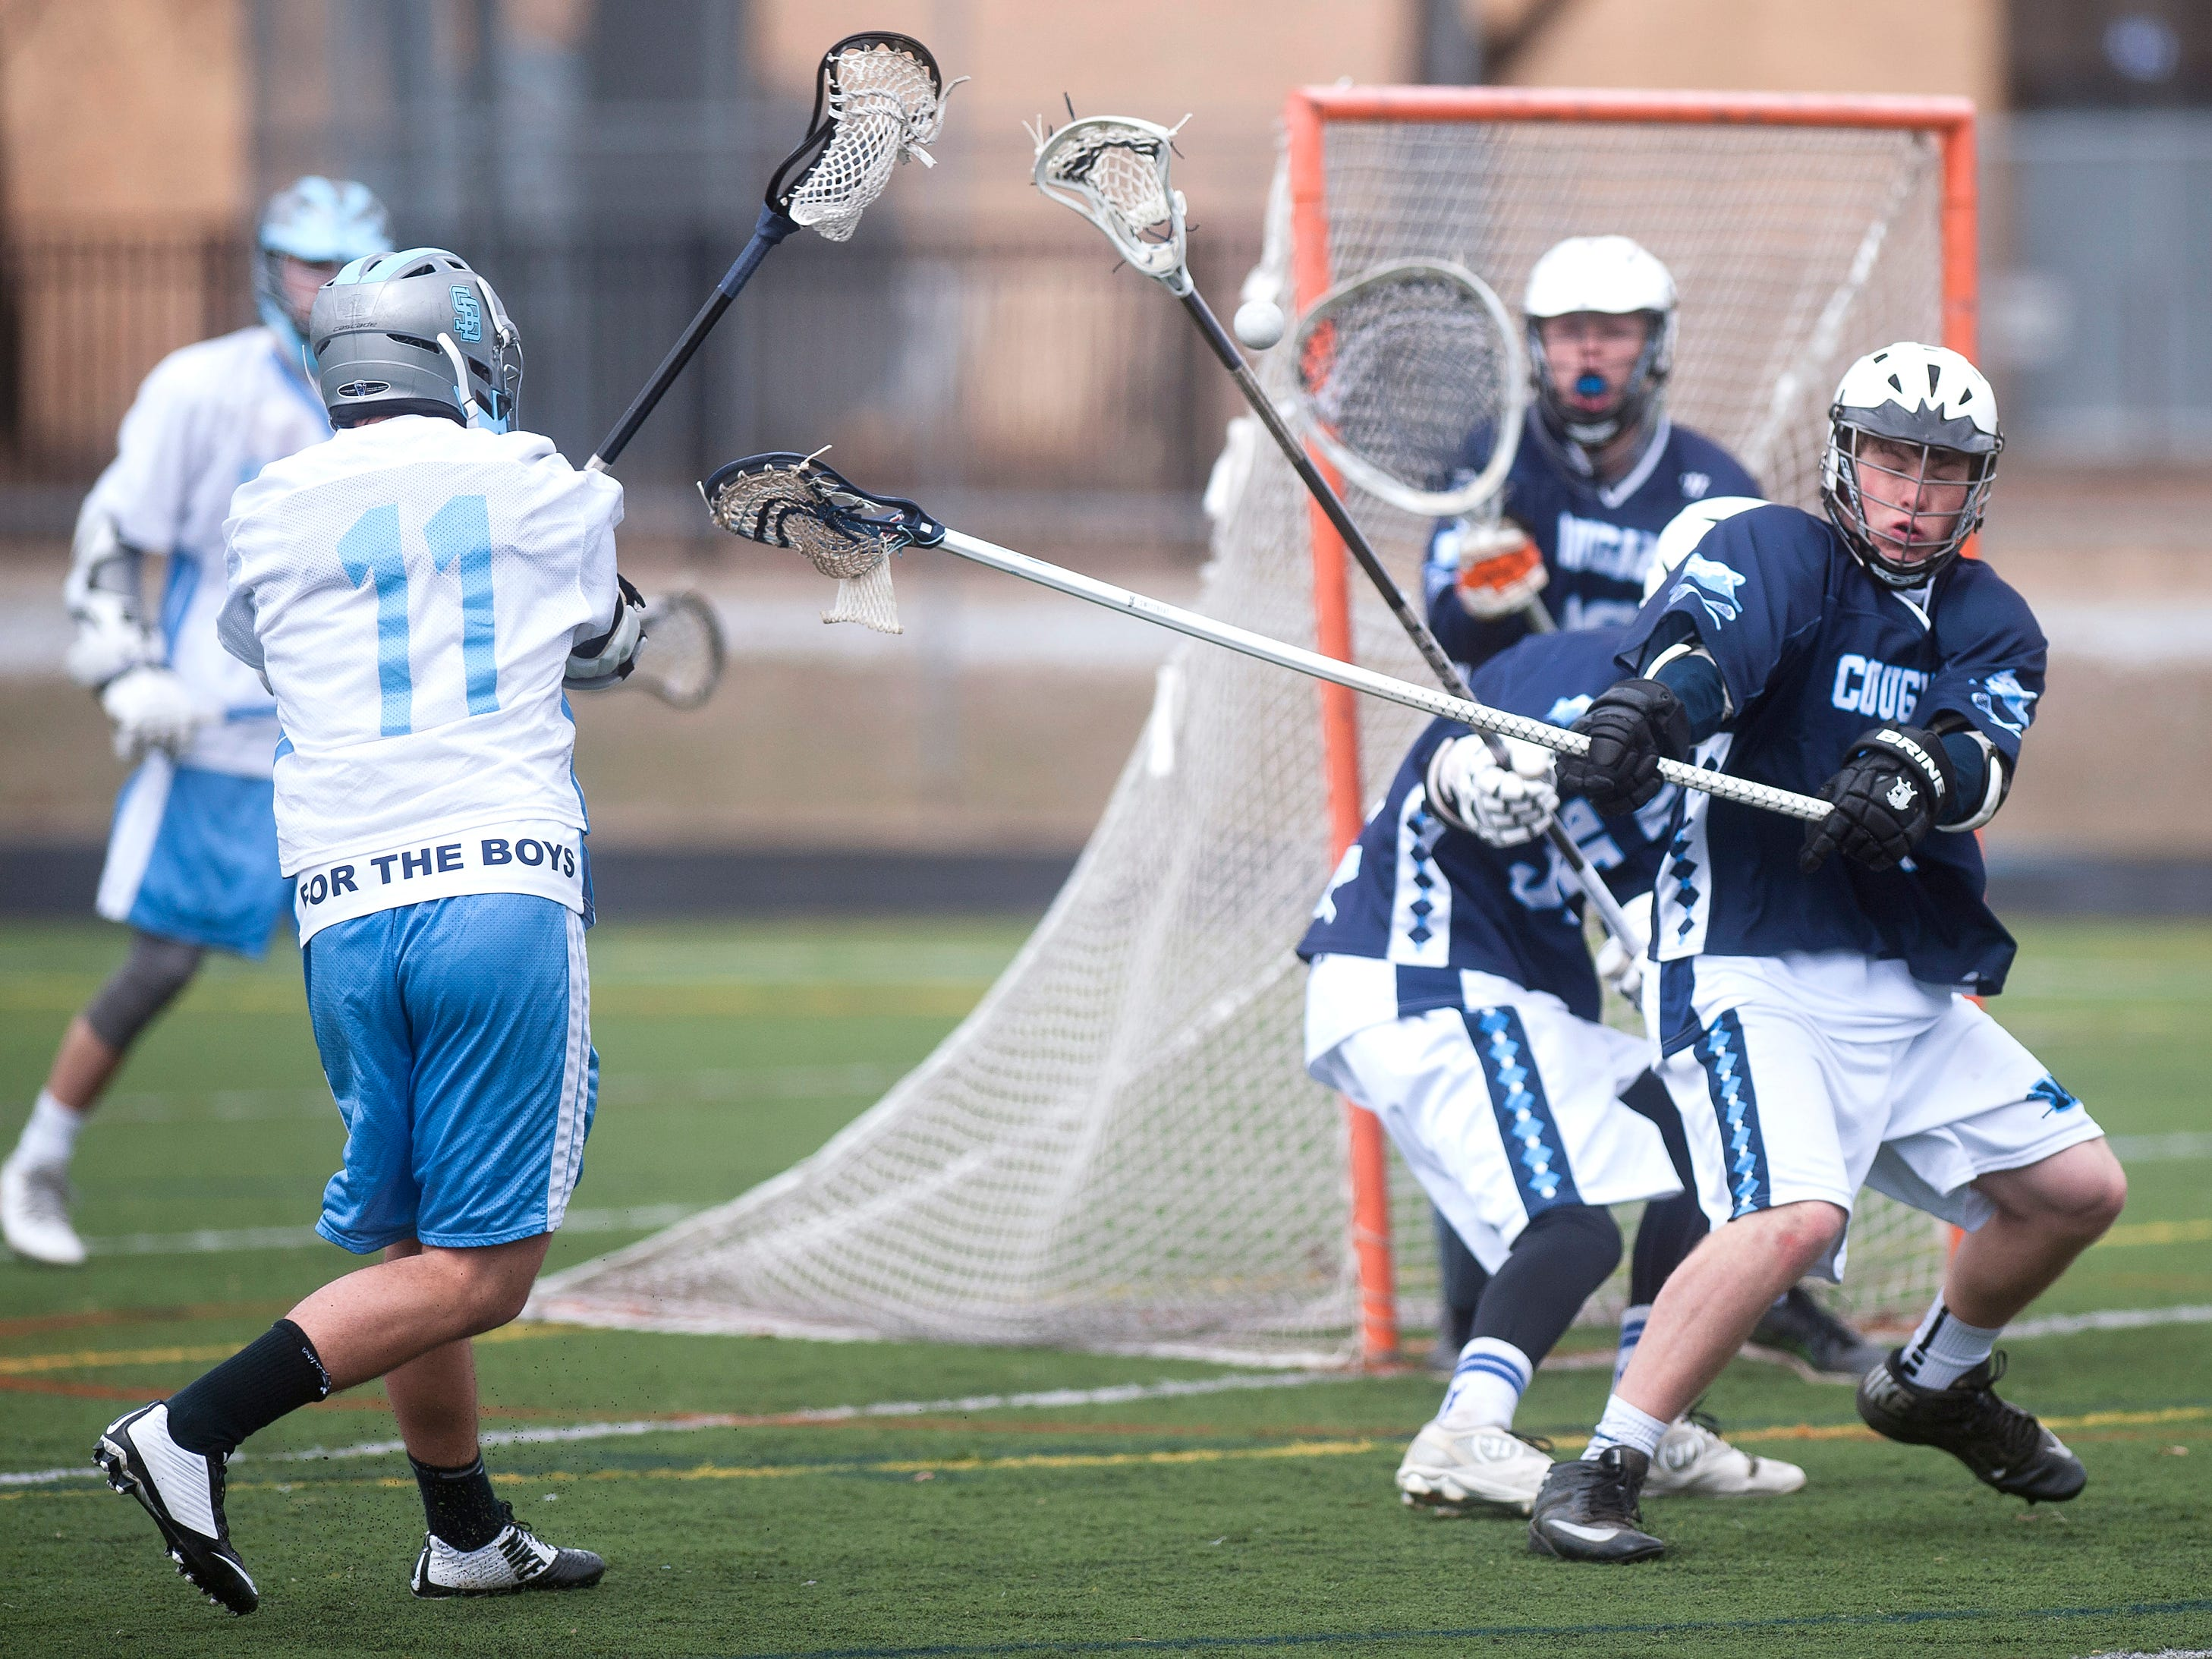 South Burlington attacker Ben Sievers (11) rifles a shot at the Mount Mansfield goal during the fourth quarter of Saturday's boys lacrosse game in South Burlington.